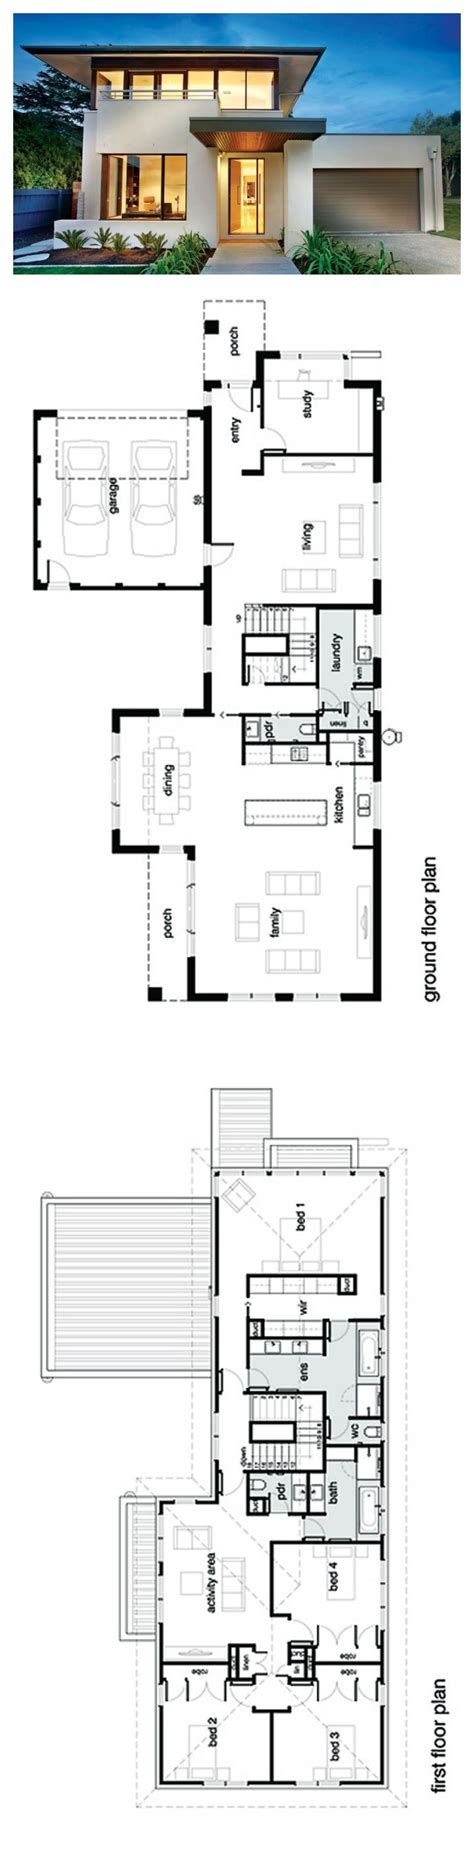 contemporary floor plans best 25 modern house plans ideas on pinterest modern floor plans modern house floor plans